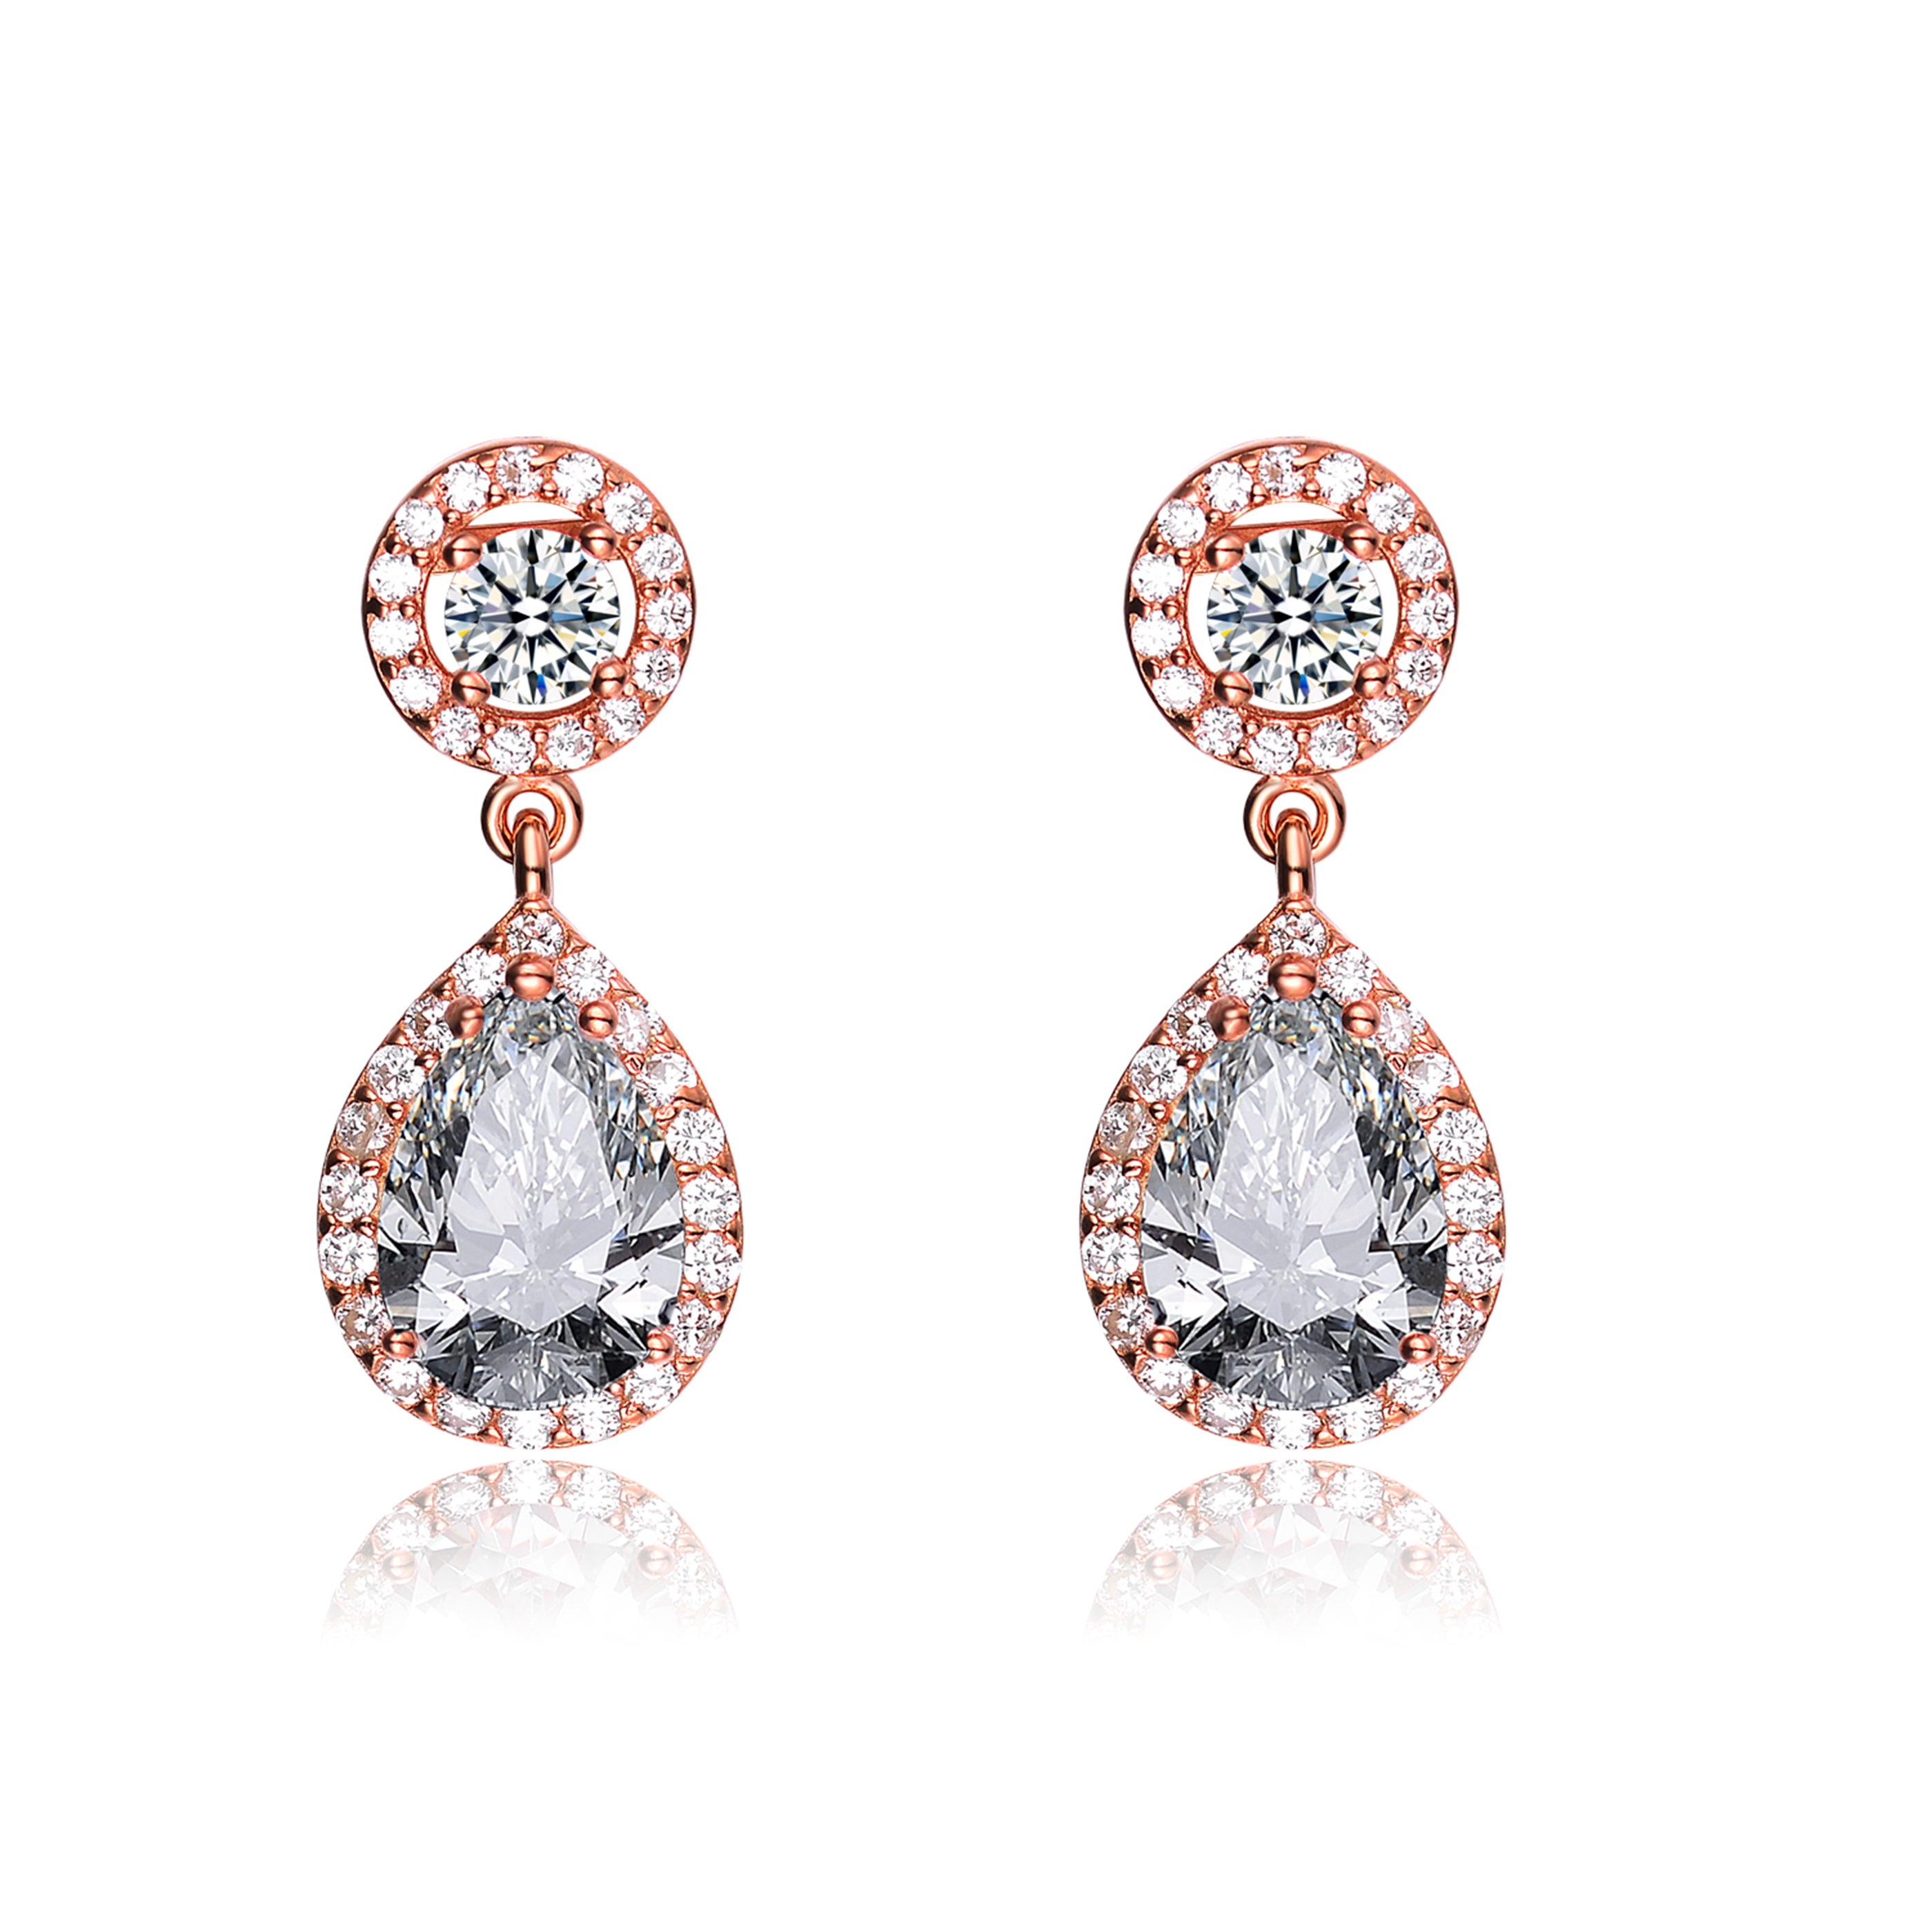 1afe788af4a39 Collette Z Sterling Silver Cubic Zirconia Pear Drop Earrings - White